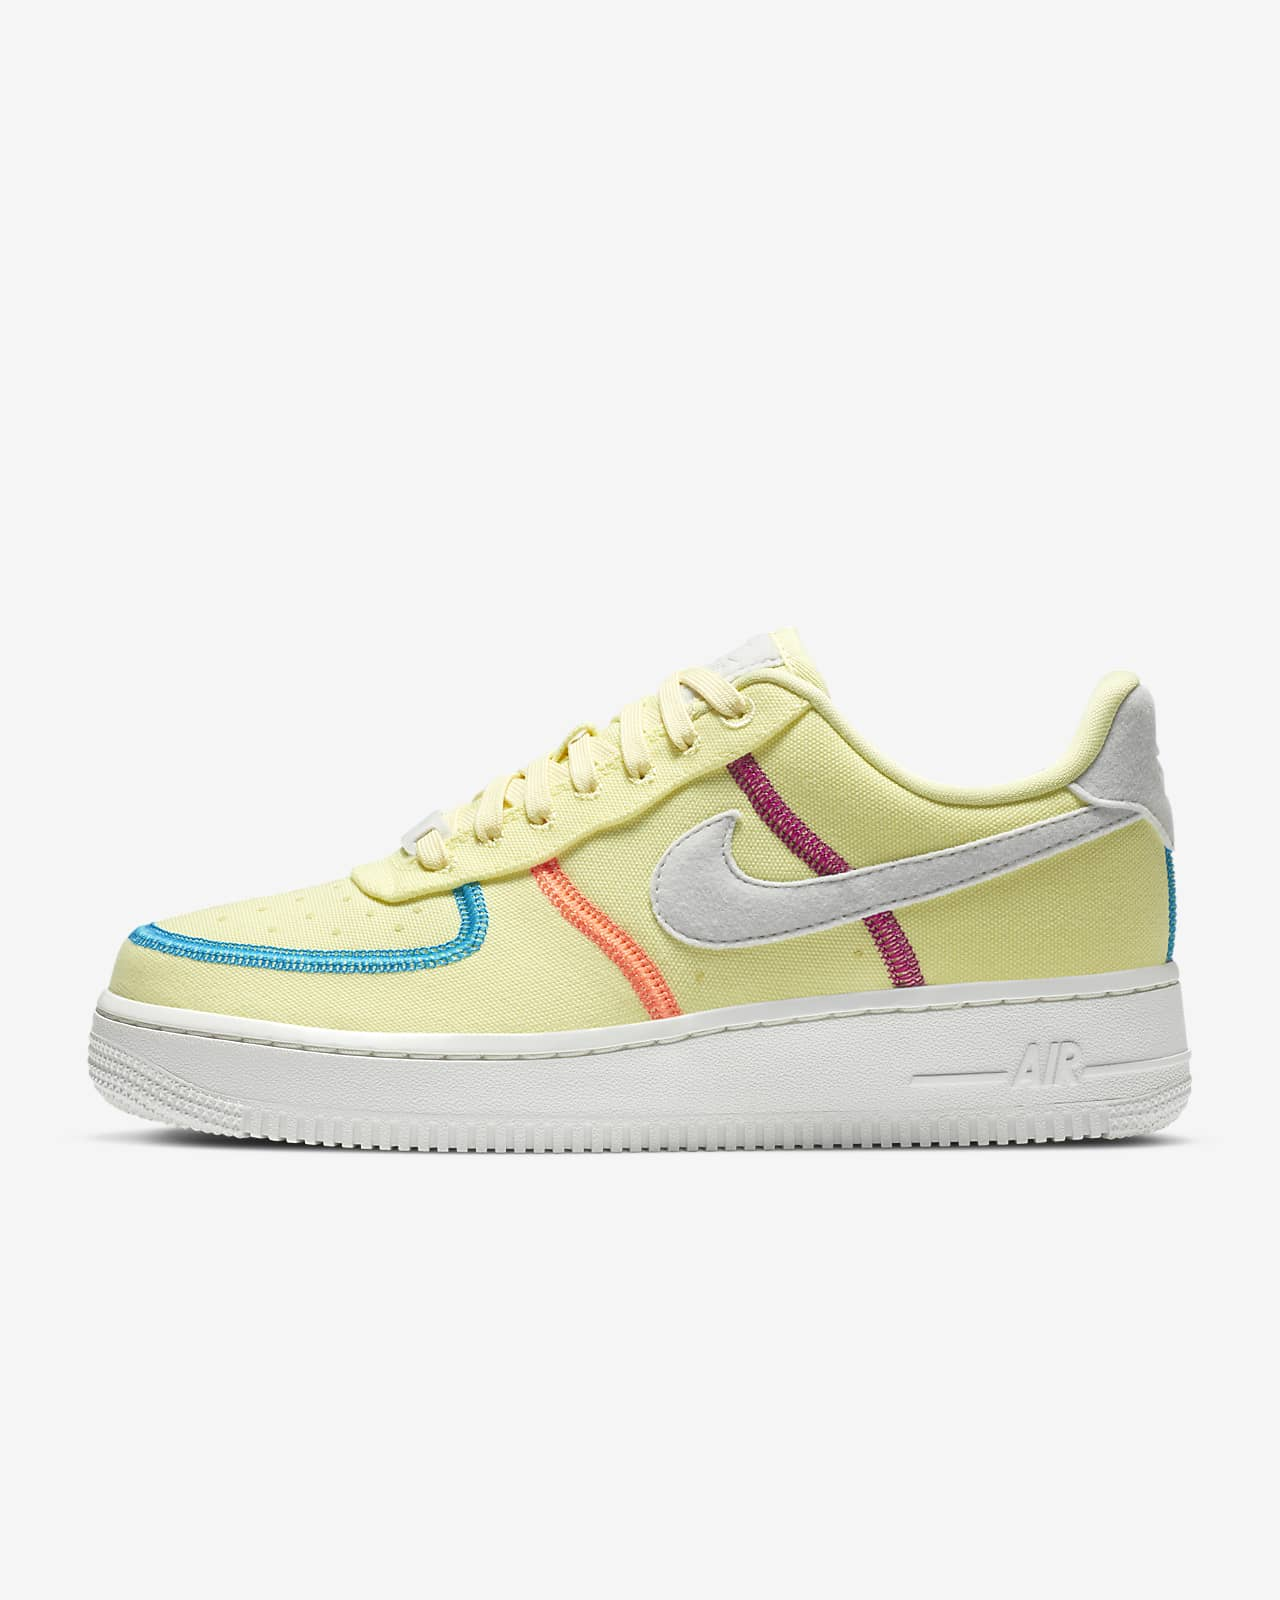 Nike Air Force 1 '07 LX Women's Shoe